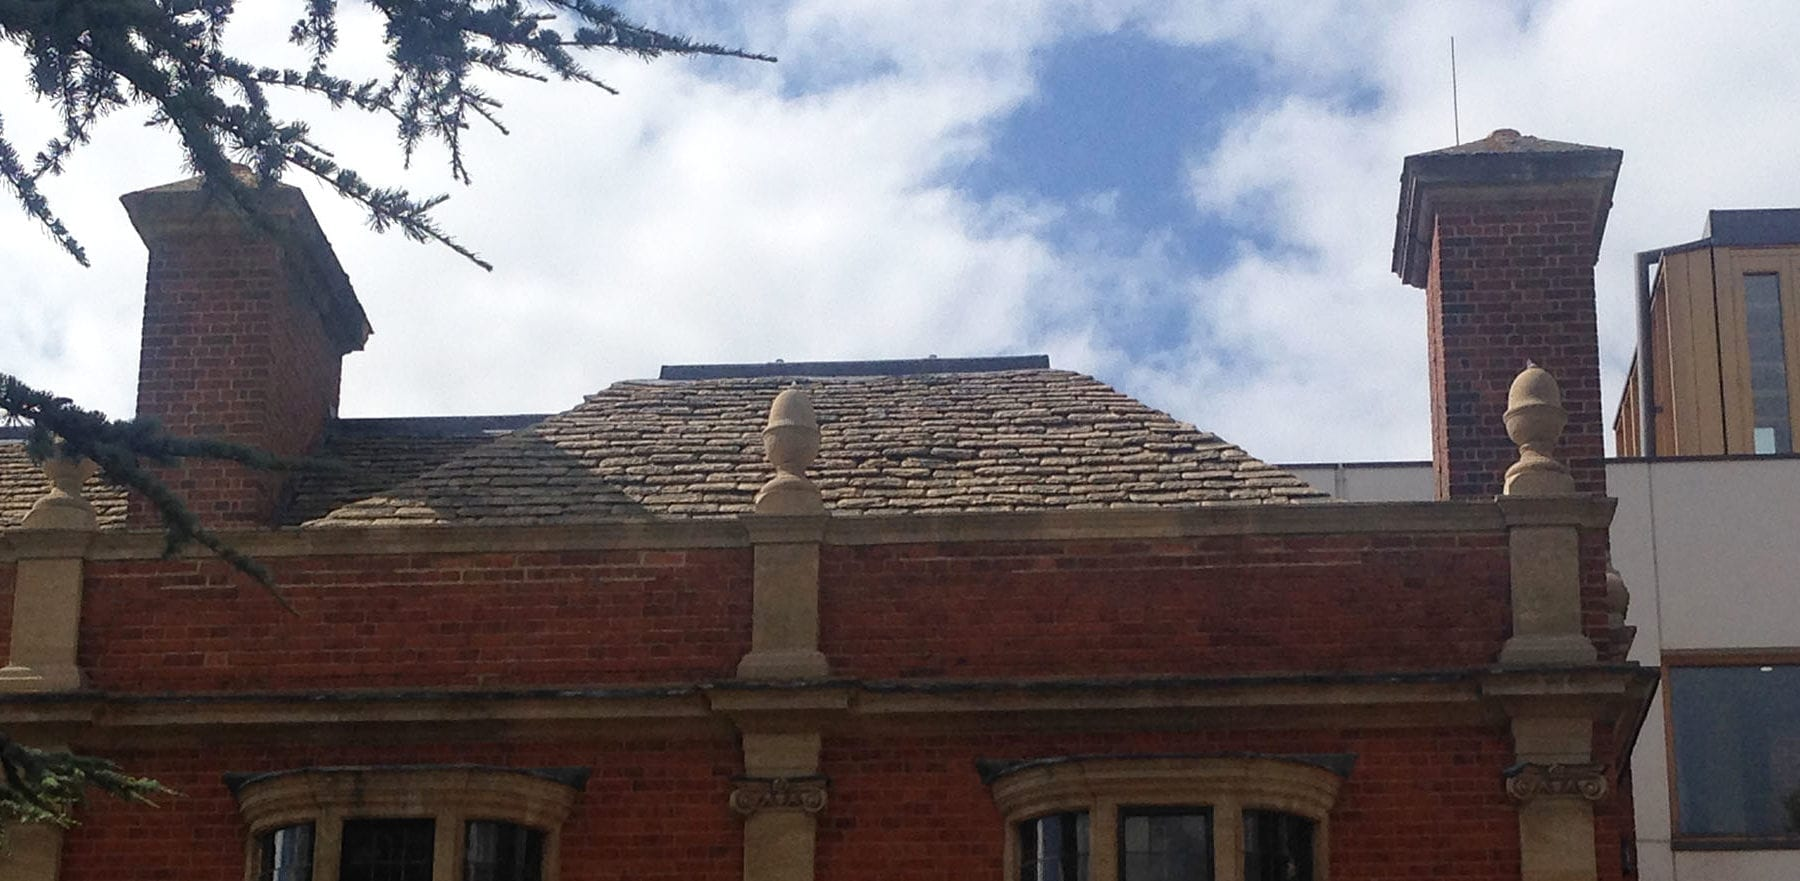 Lifestiles - Natural Stone Roof Tiles - The Stanford, England 4